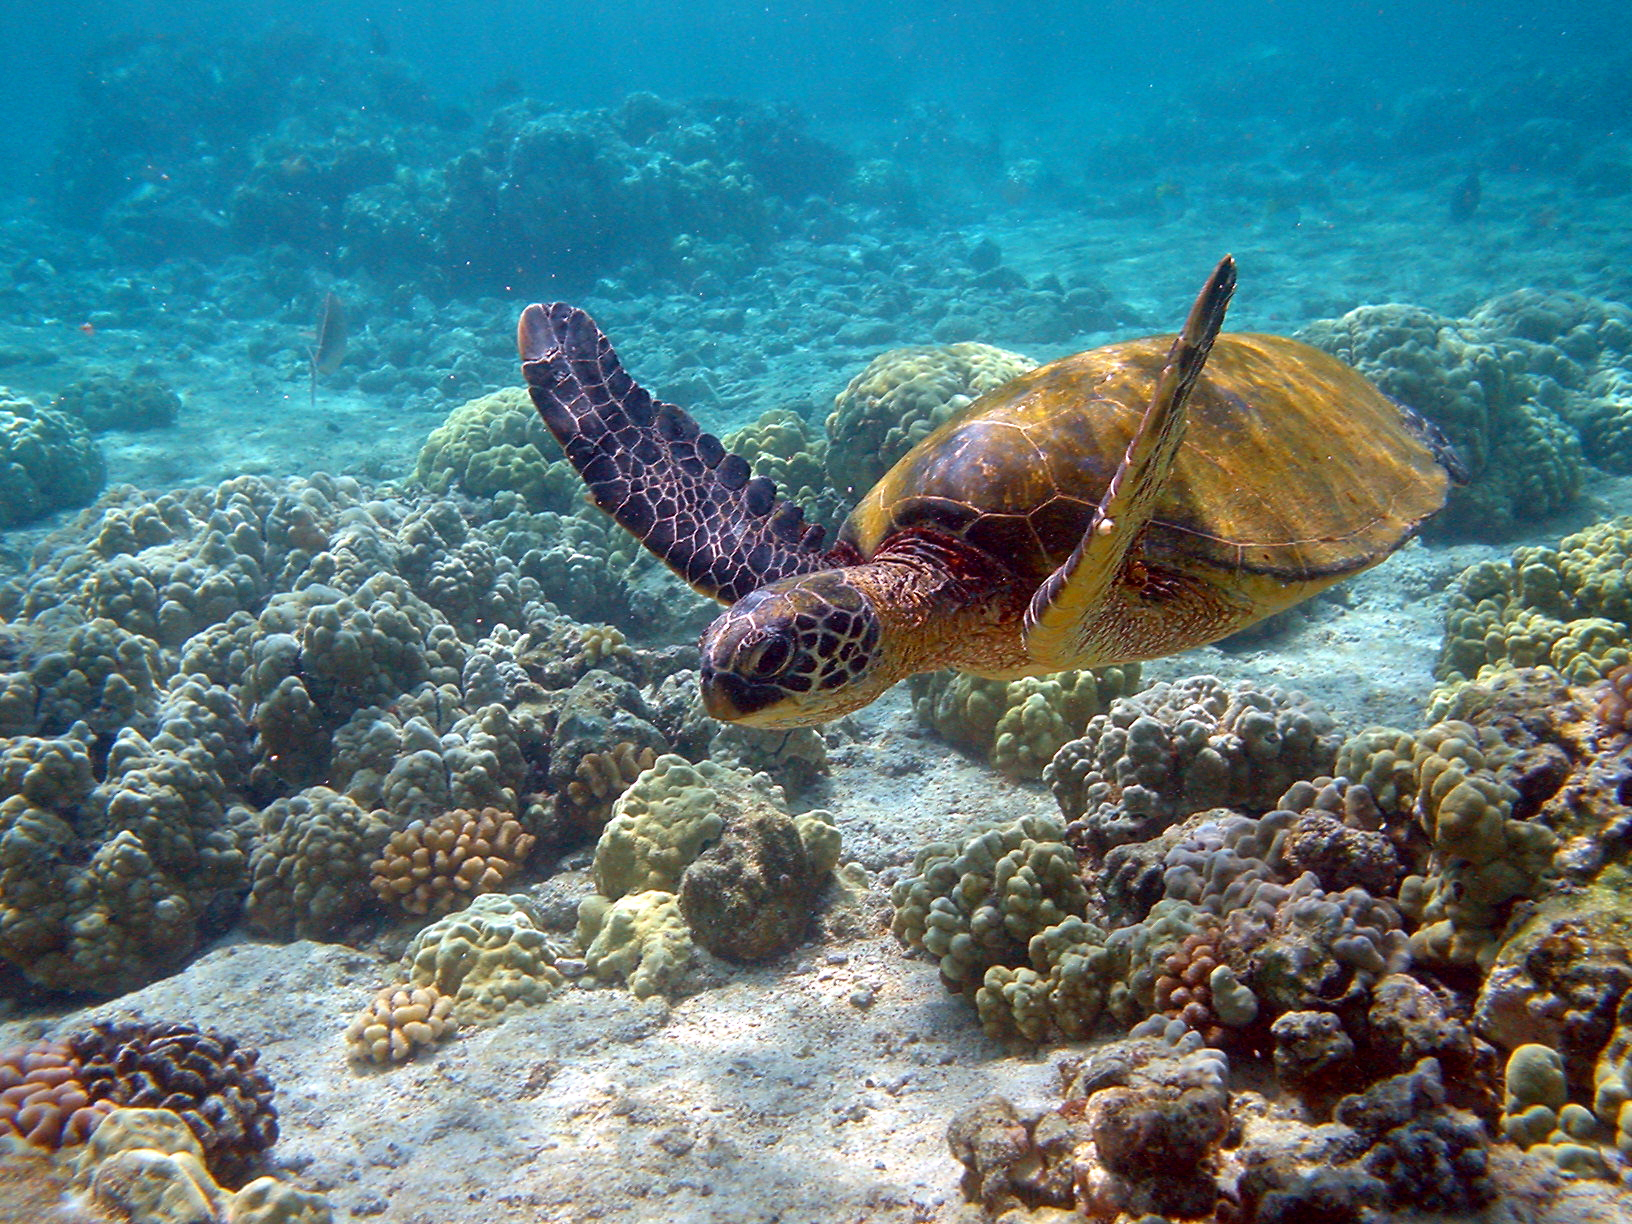 https://upload.wikimedia.org/wikipedia/commons/b/bb/Hawaii_turtle_2.JPG